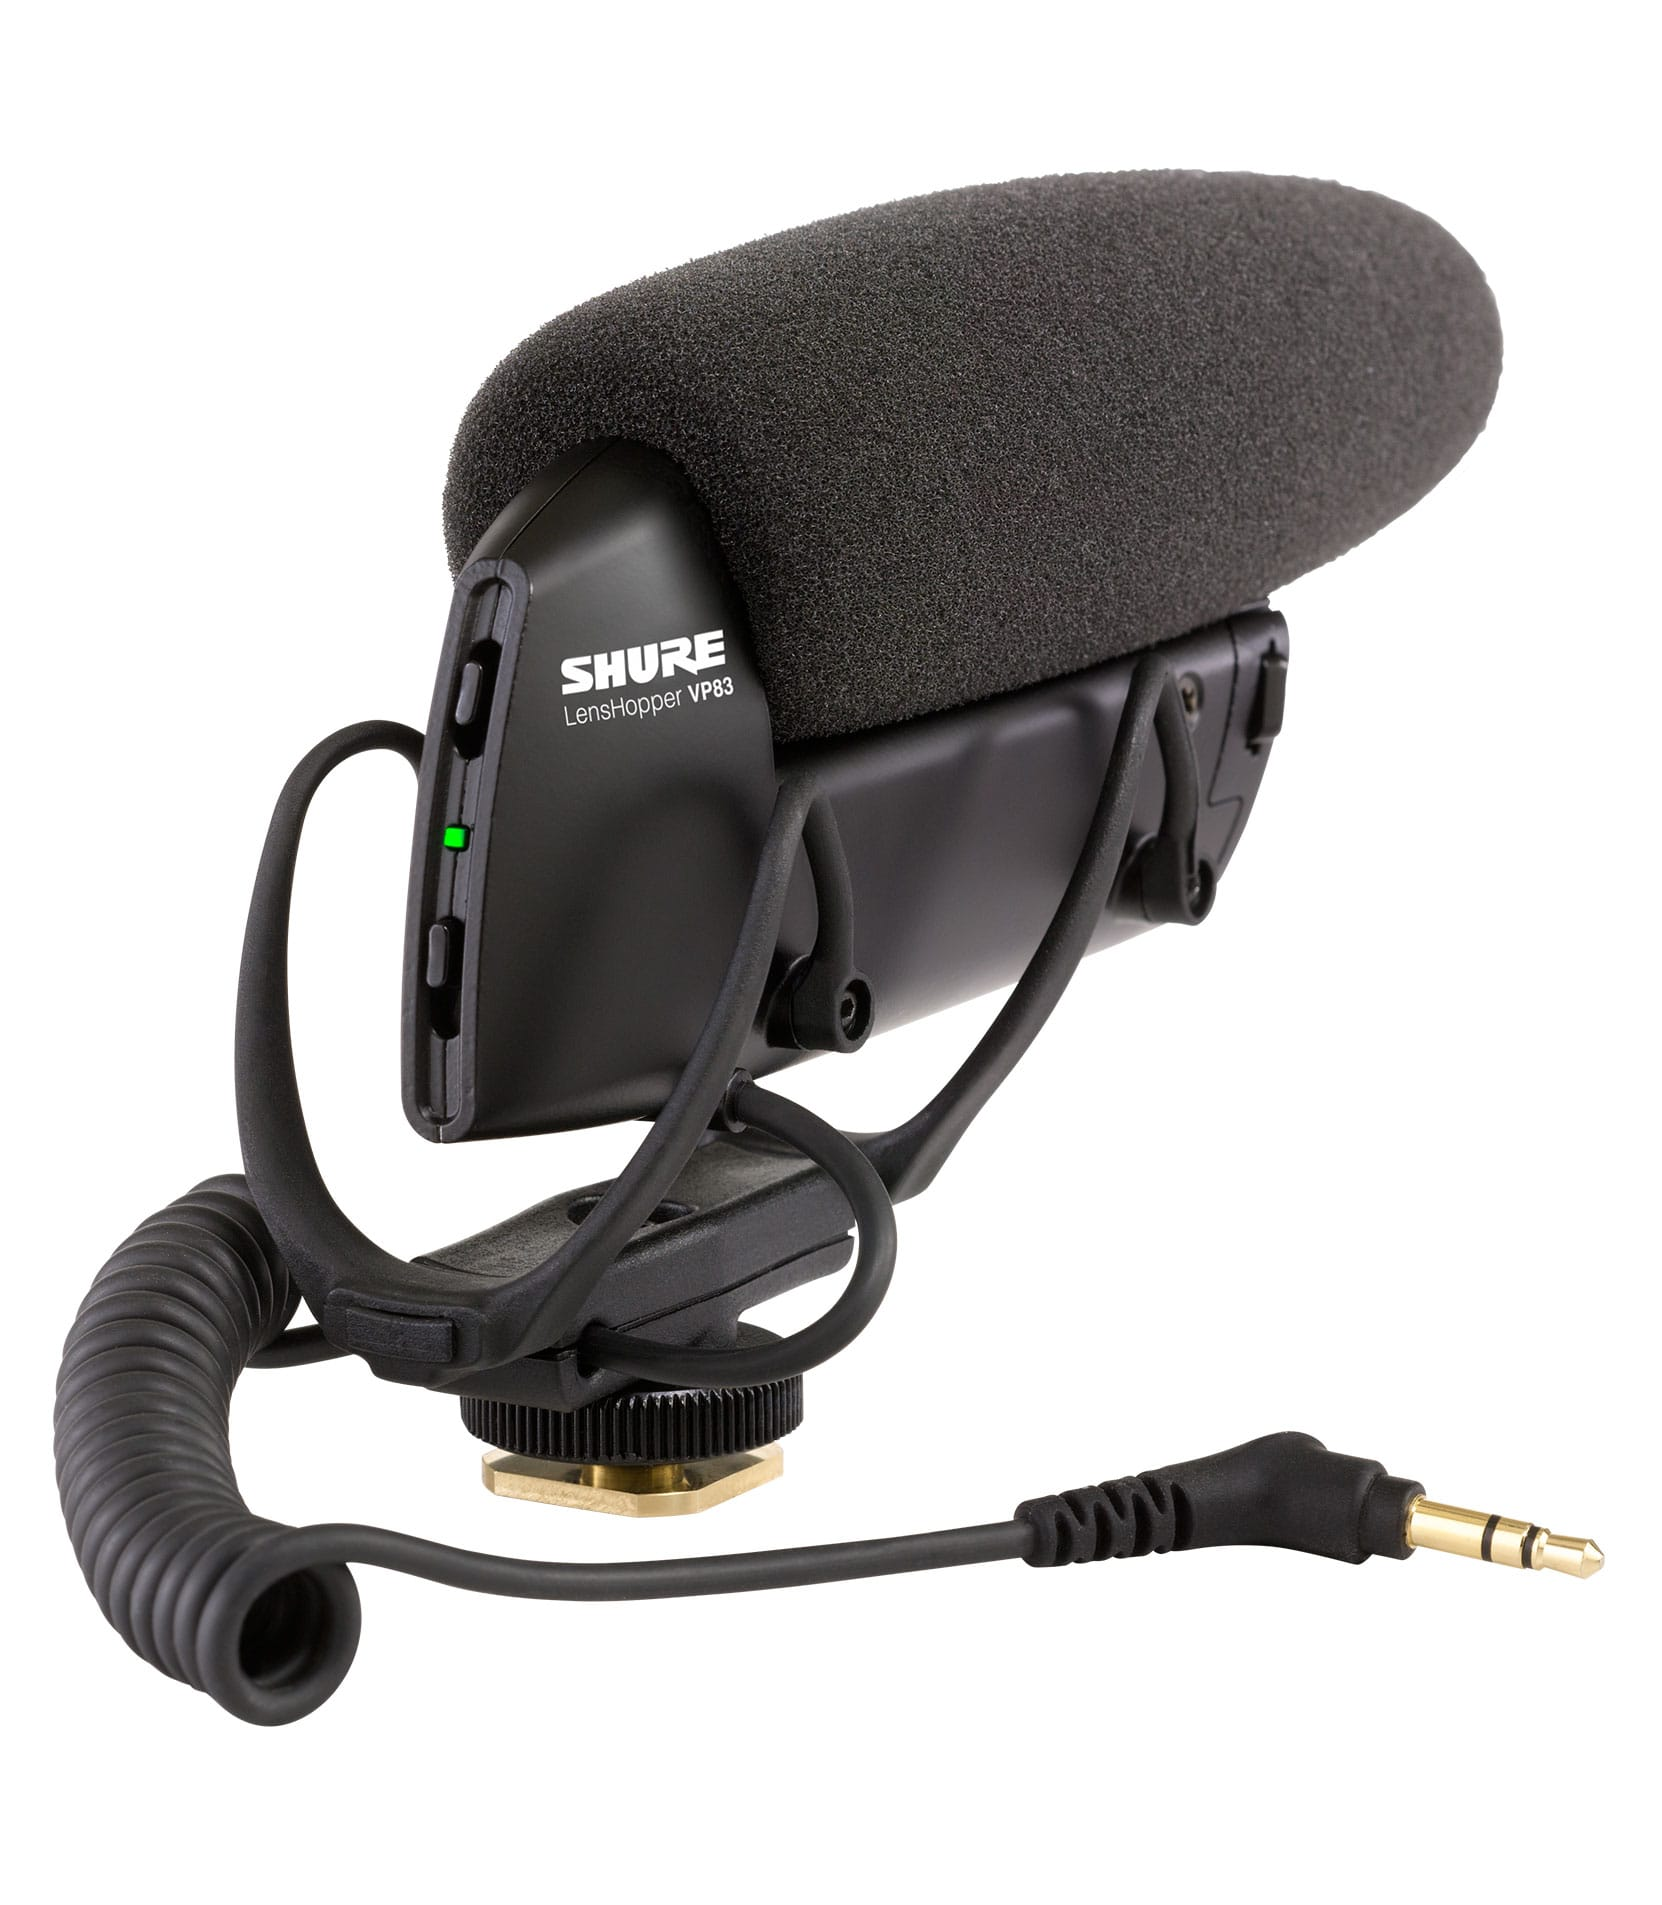 Shure - VP83 Lobar Condenser Camera Mount Shotgun Mic - Melody House Musical Instruments